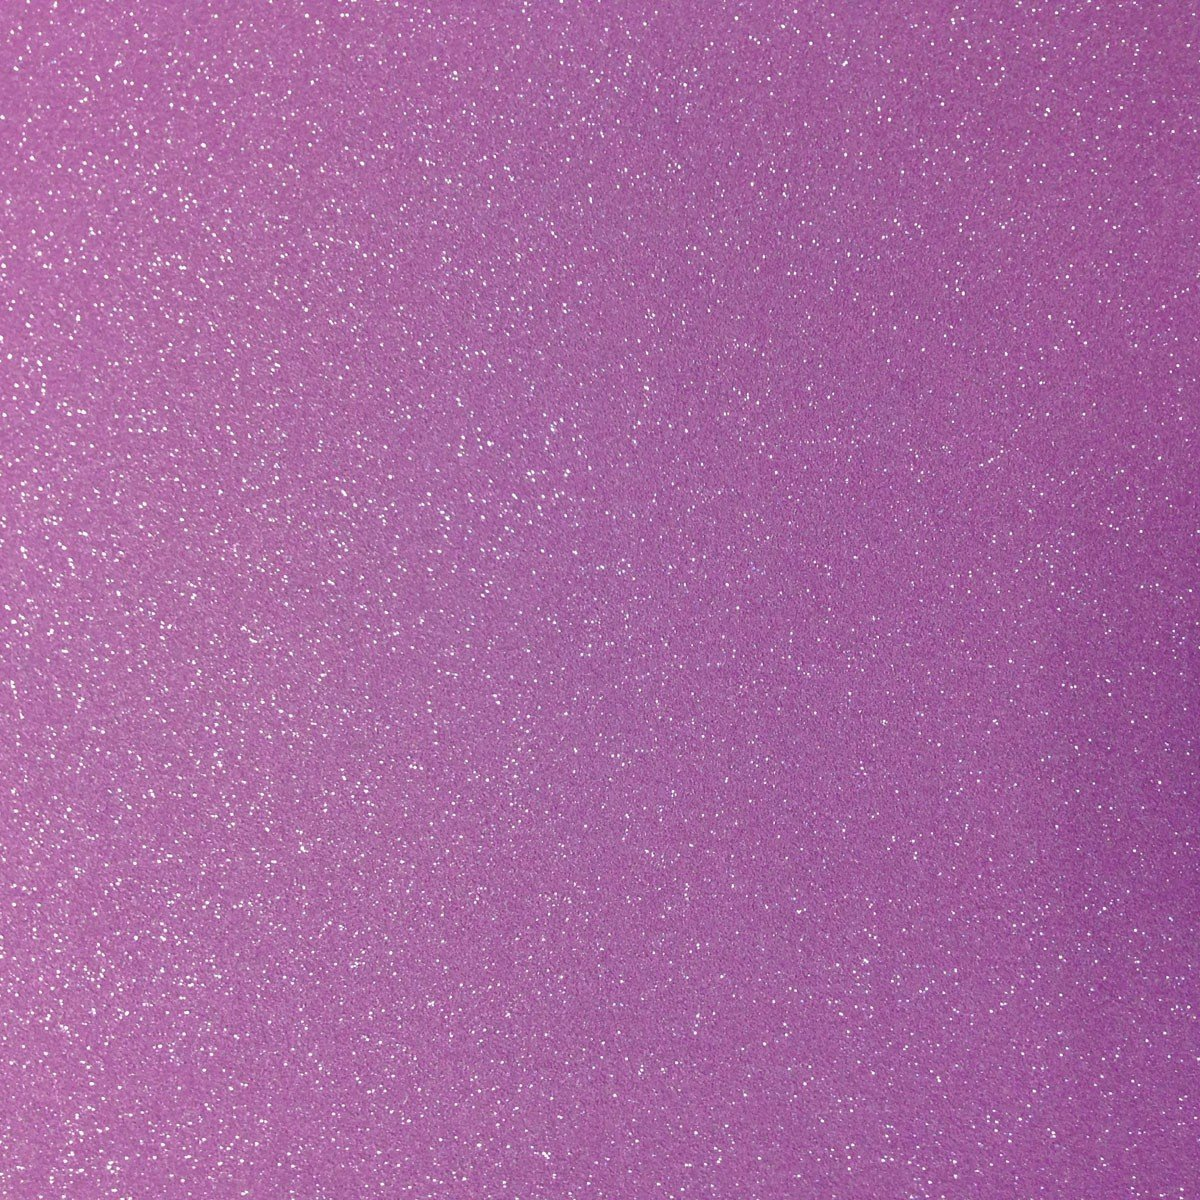 Purple Glitter Wallpaper Wallpapersafari